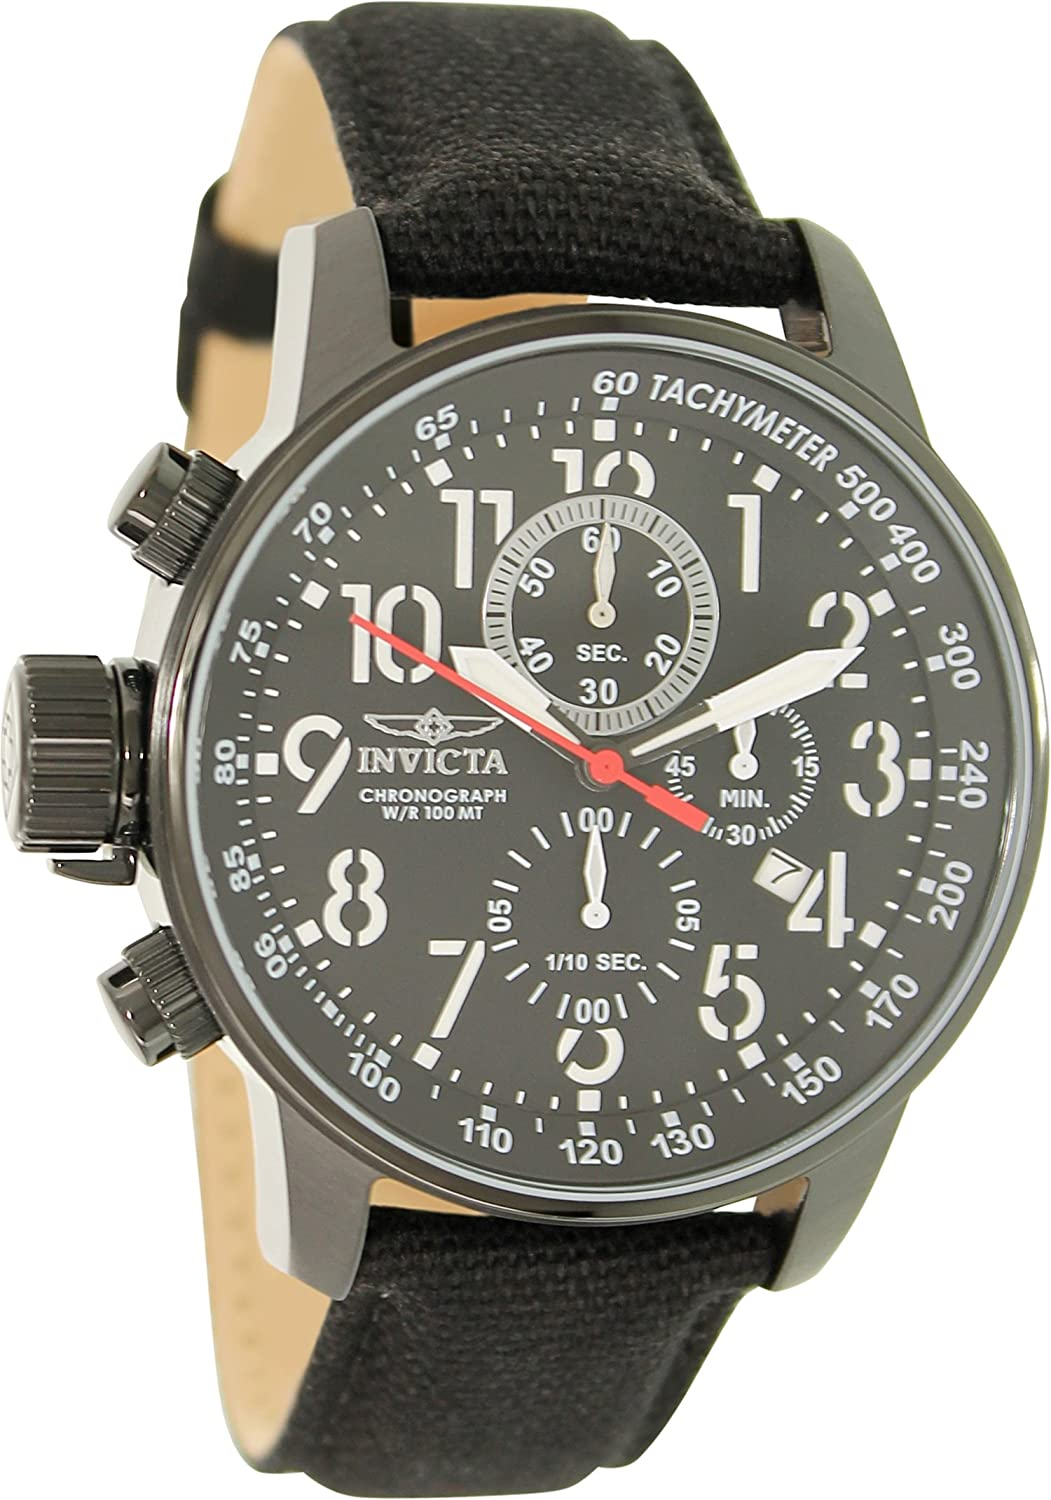 pics Invicta 1517 I Force Chronograph Watch